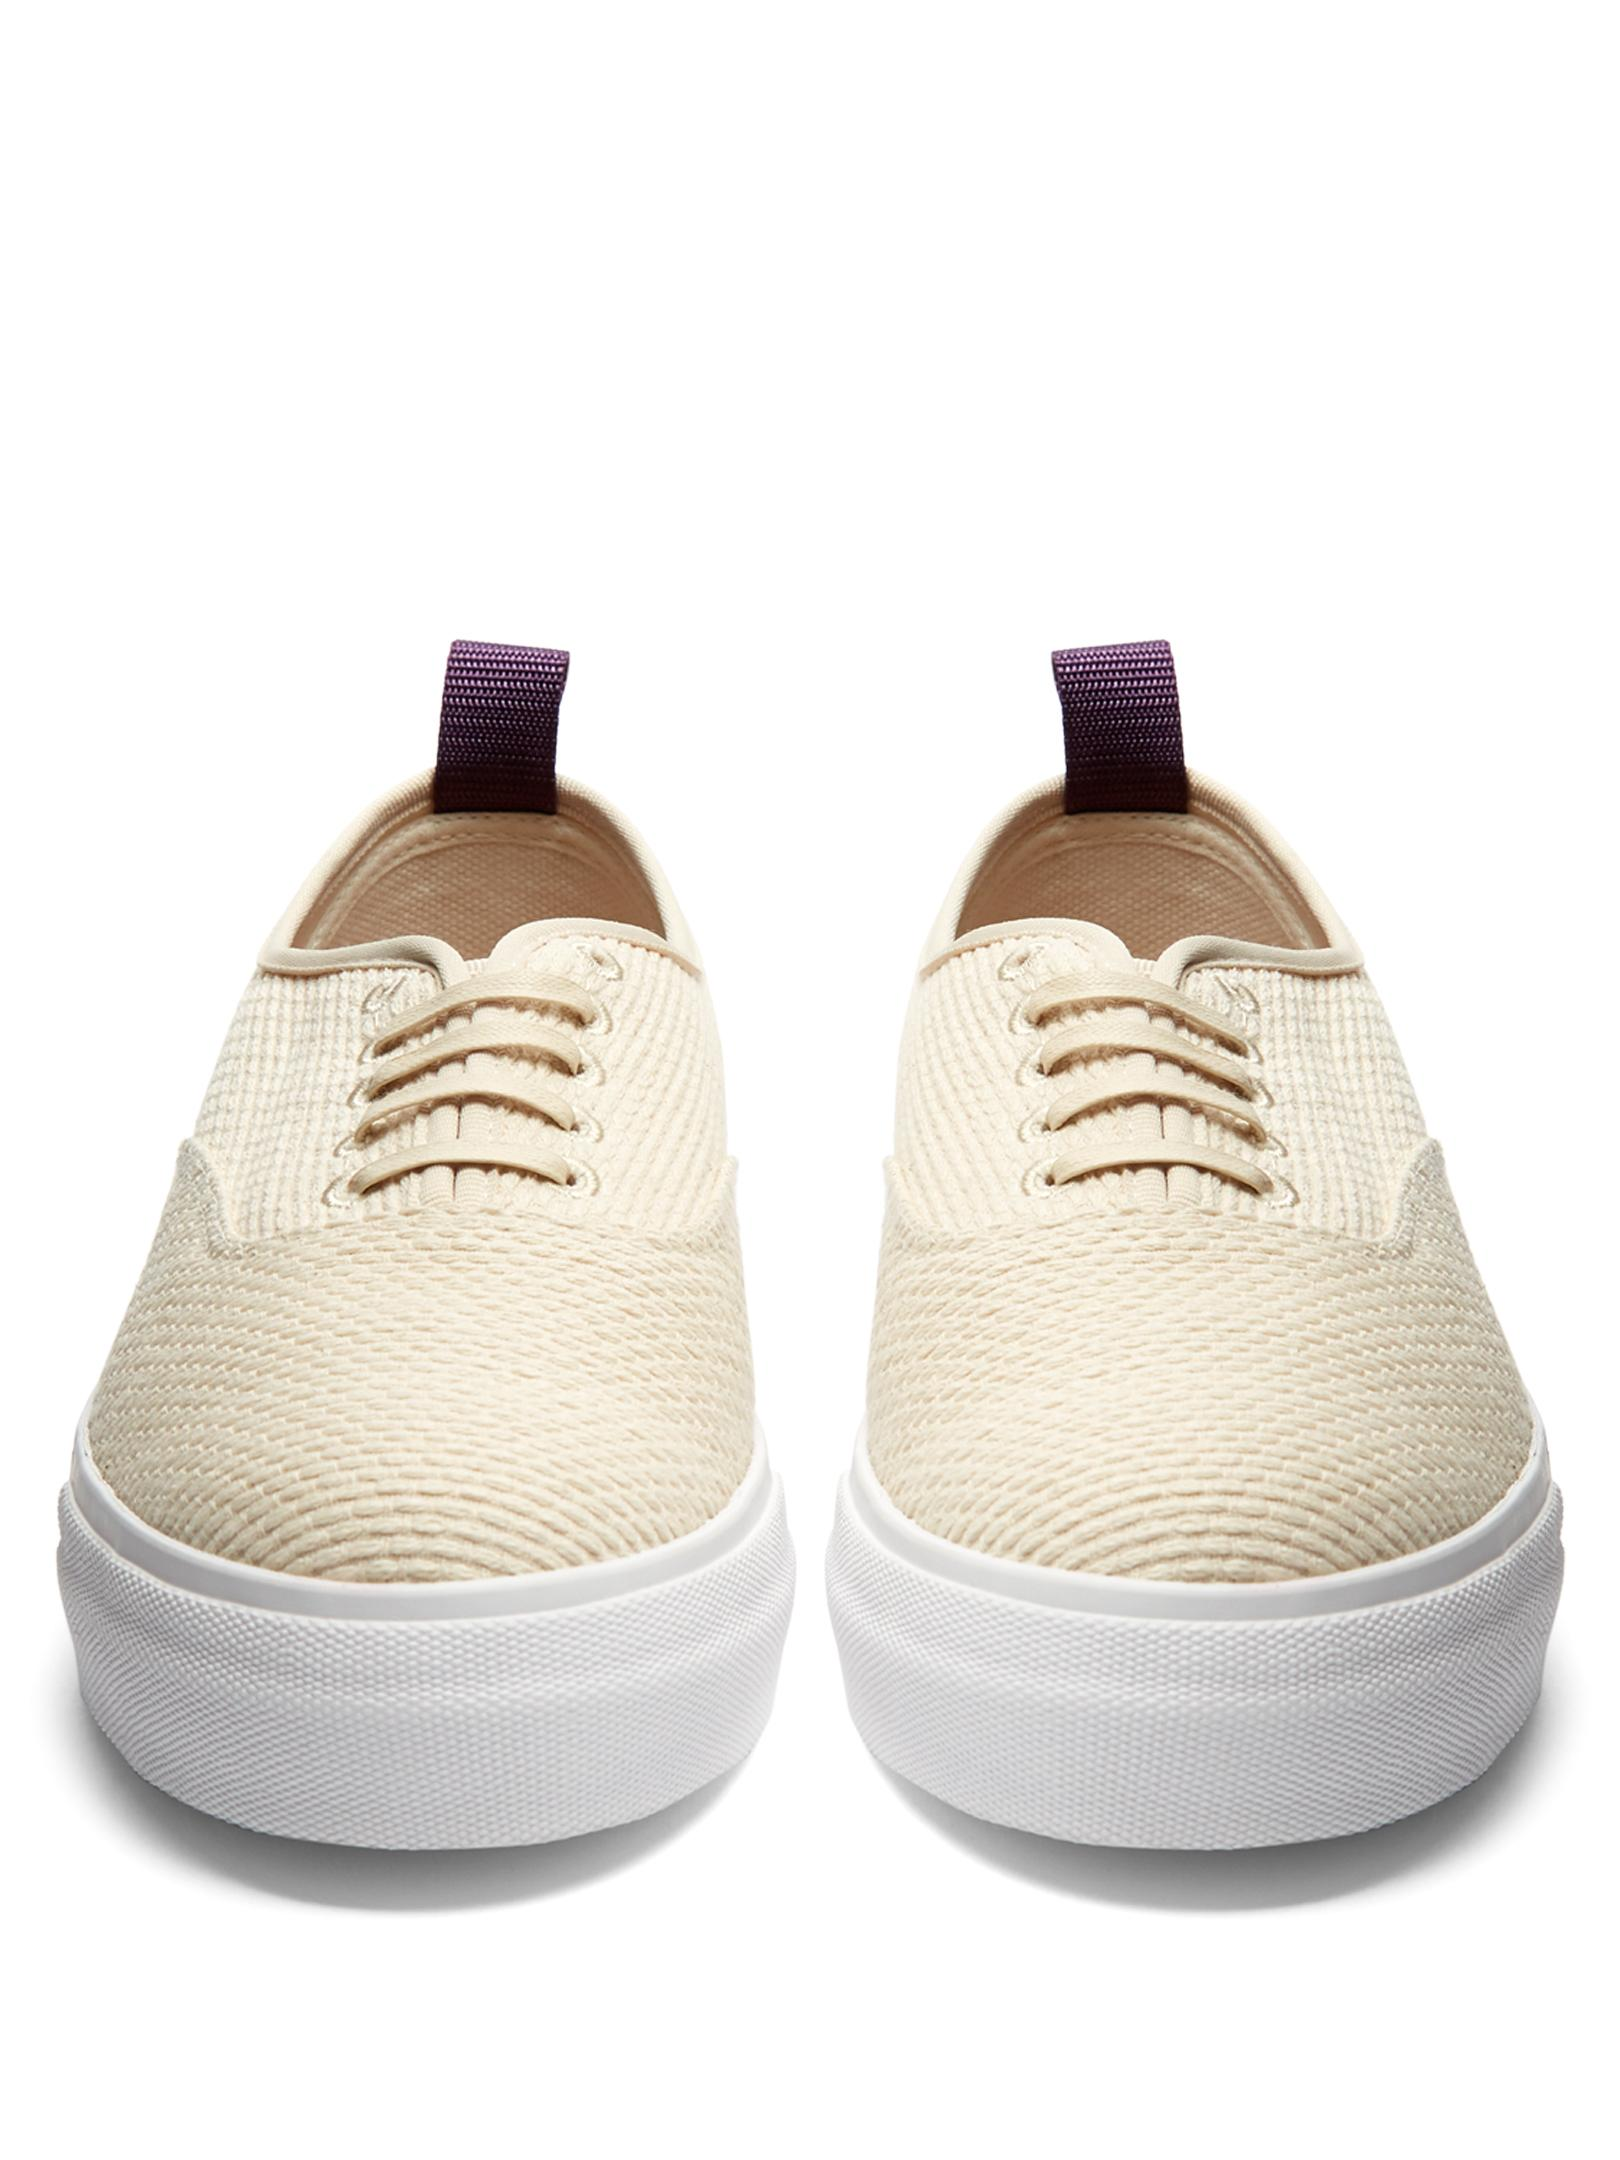 Eytys Cotton Mother Kendo Trainers in Cream (Natural)